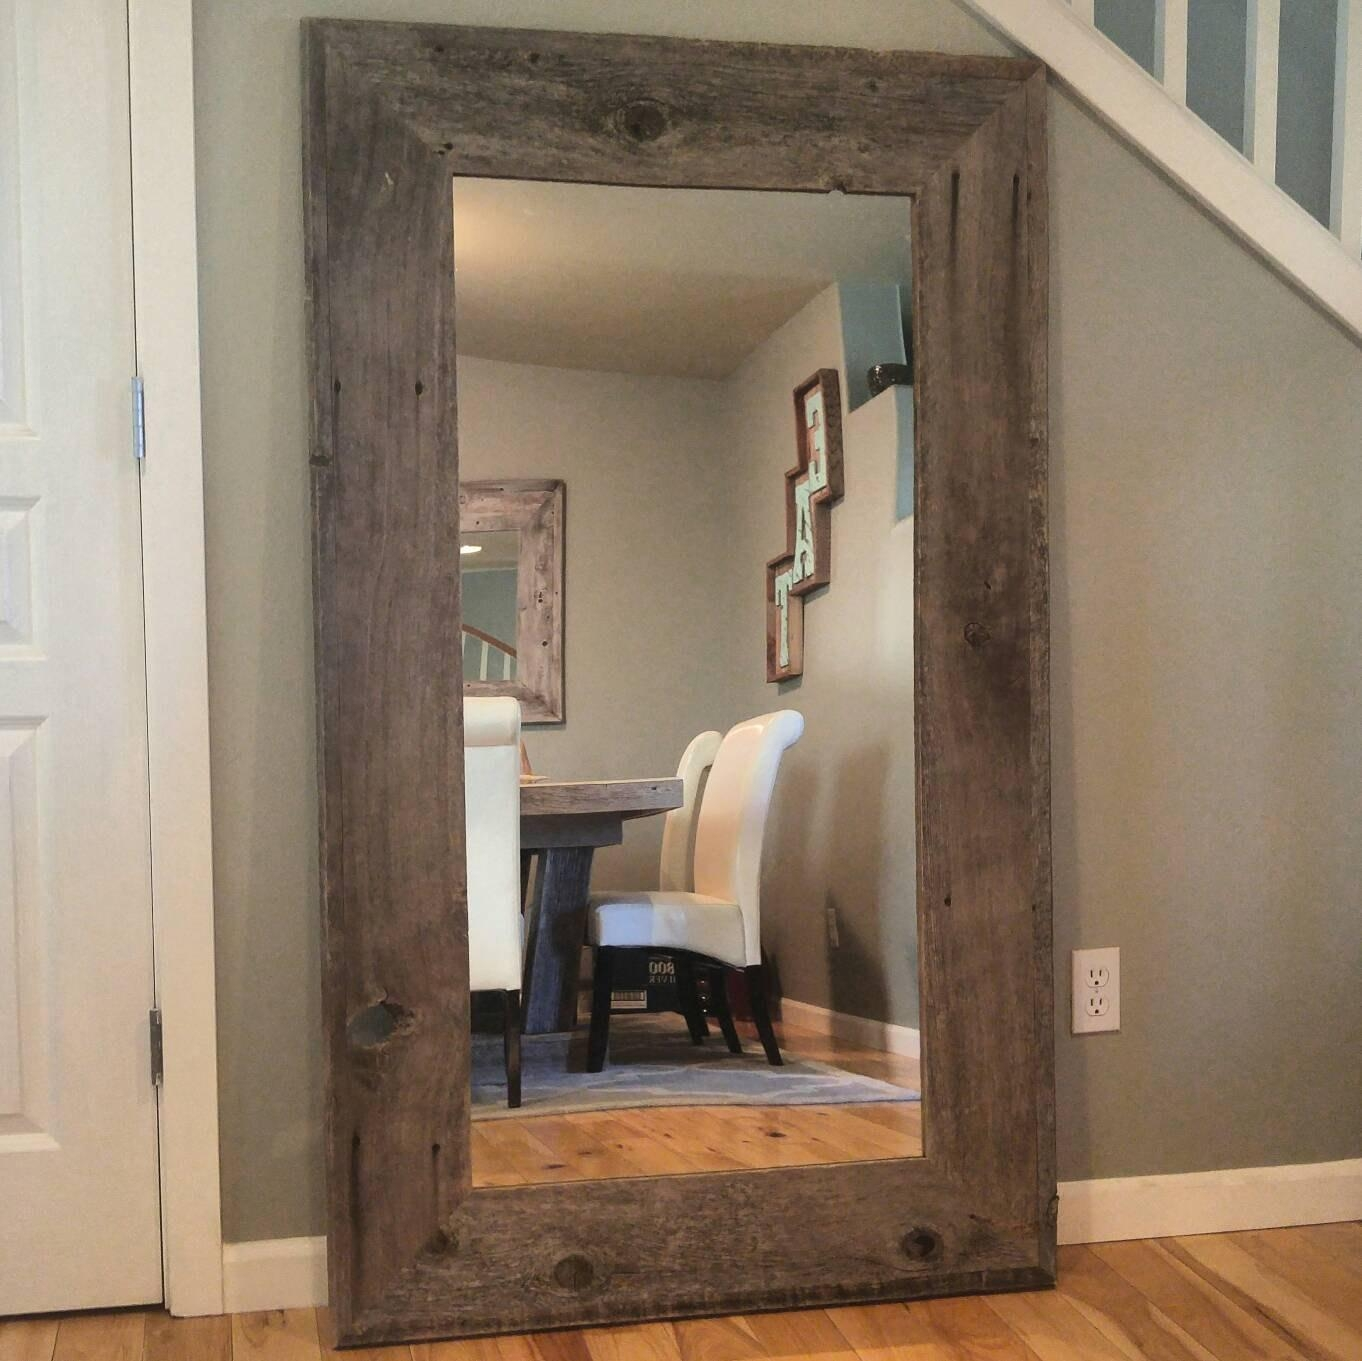 Flooring : Top Brass Vintage Retro Wallrror Full Length Loaf For Vintage Floor Length Mirror (Image 15 of 20)